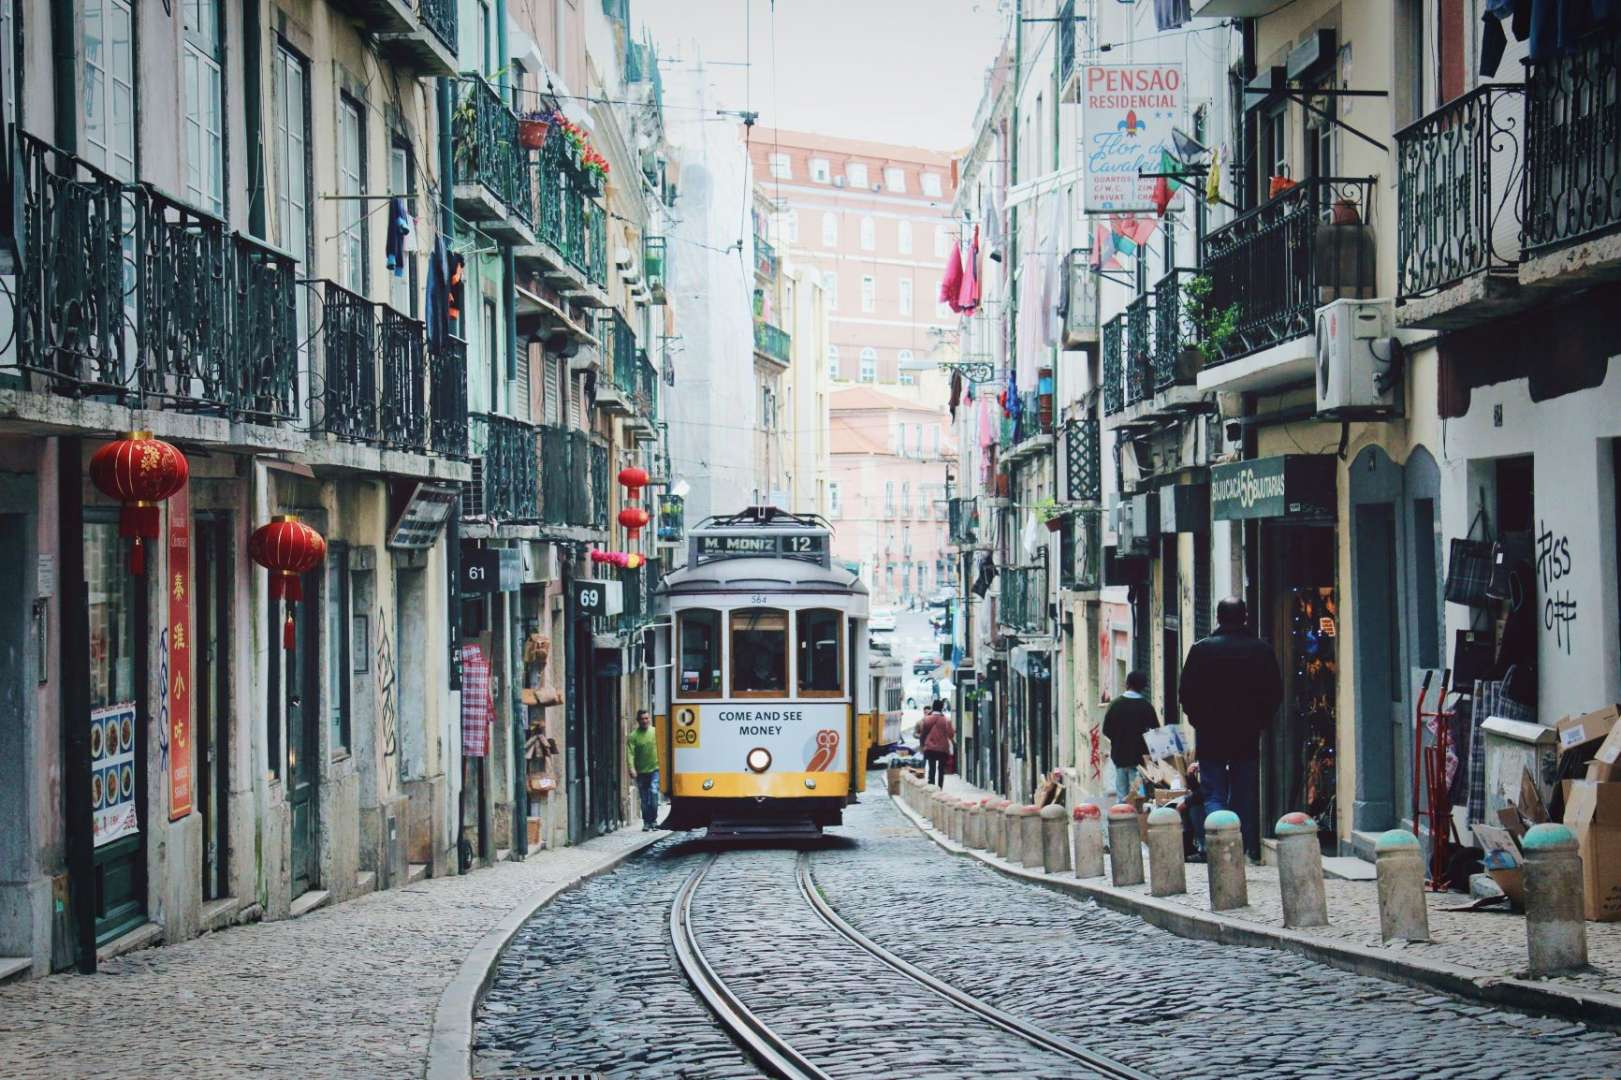 Reasons to visit portugal - accessibility